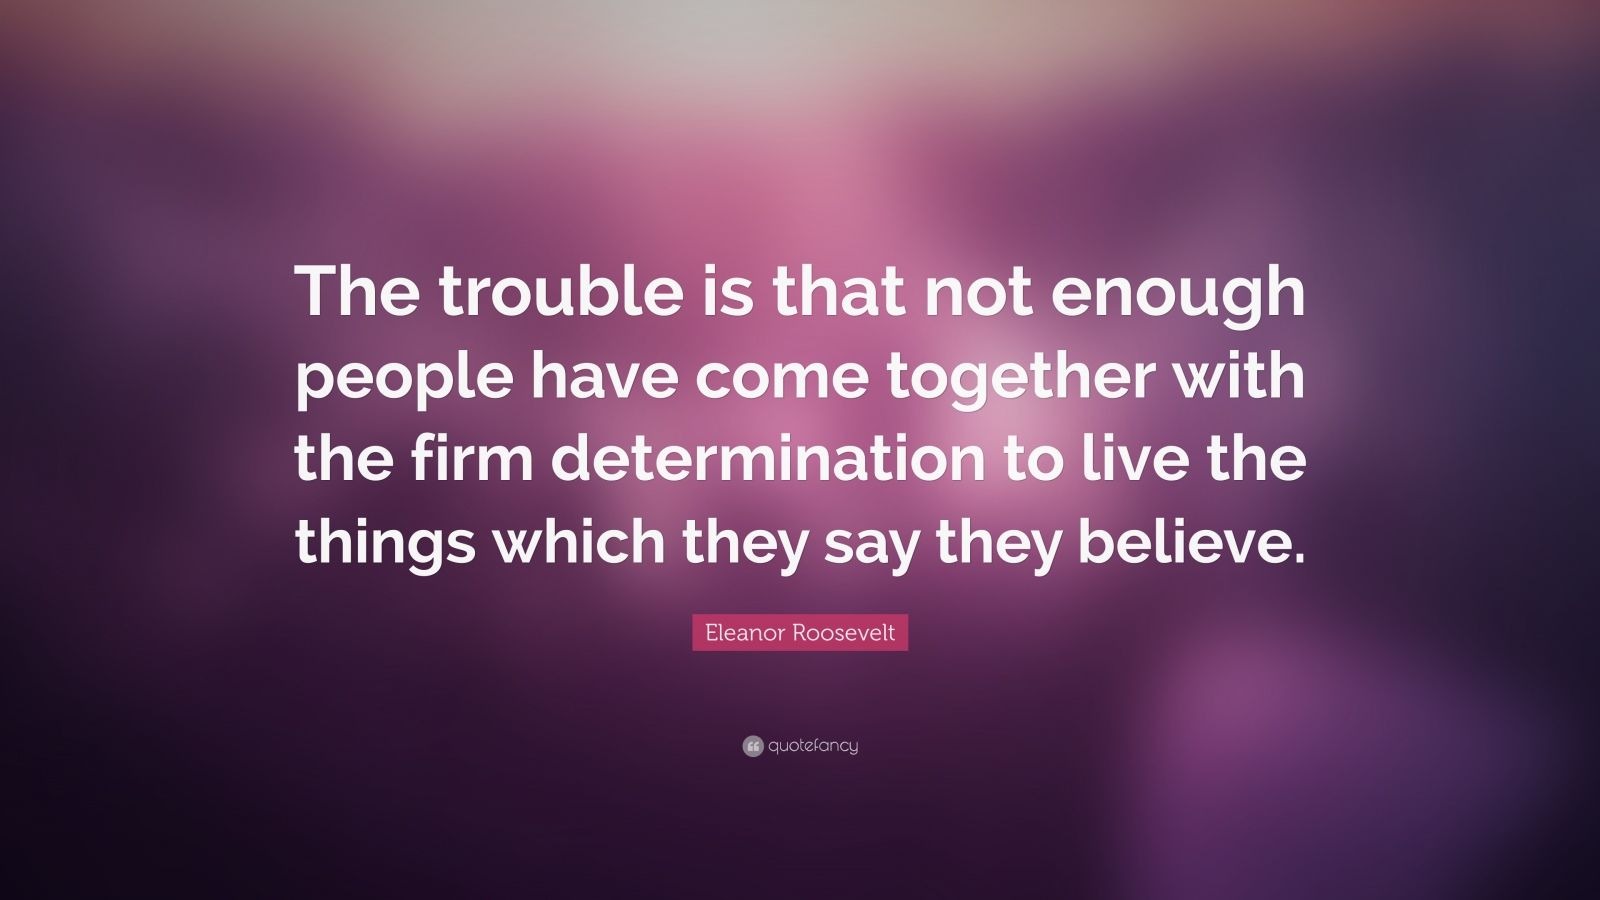 """Eleanor Roosevelt Quote: """"The trouble is that not enough people have come together with the firm determination to live the things which they say they believe."""""""